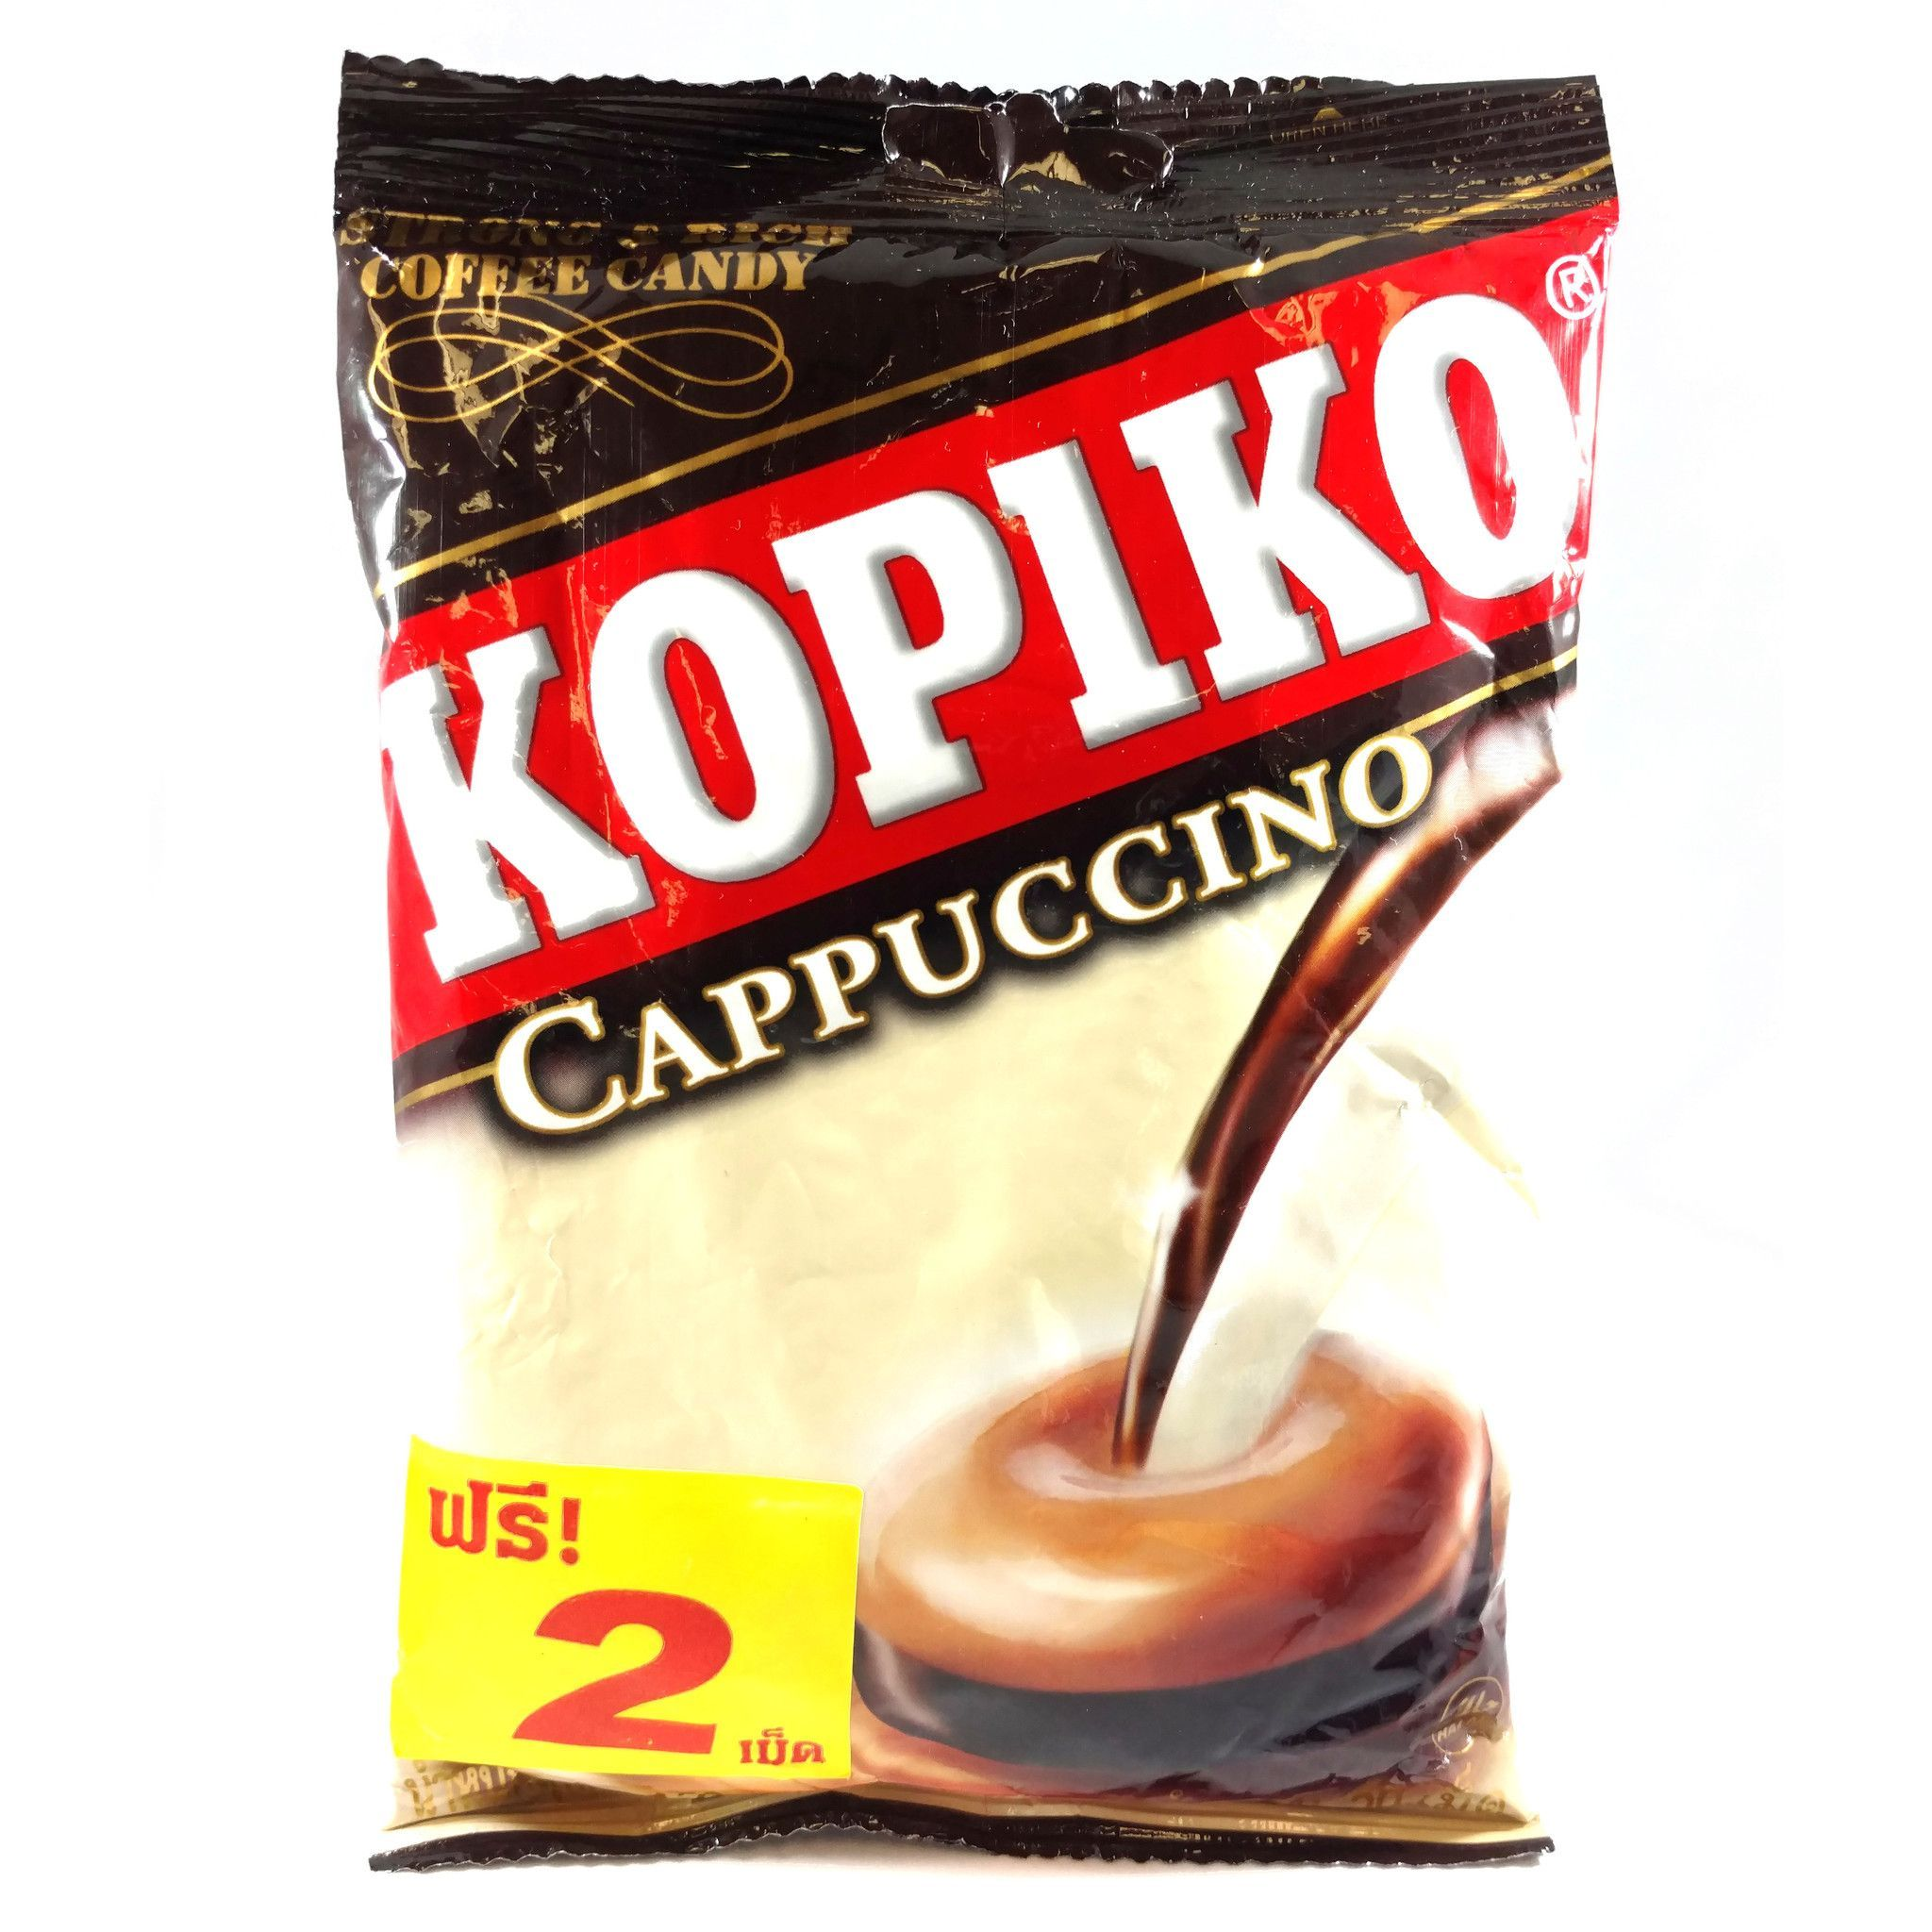 Kopiko Cappuccino Coffee Hard Candy | Healthy eating recipes ...